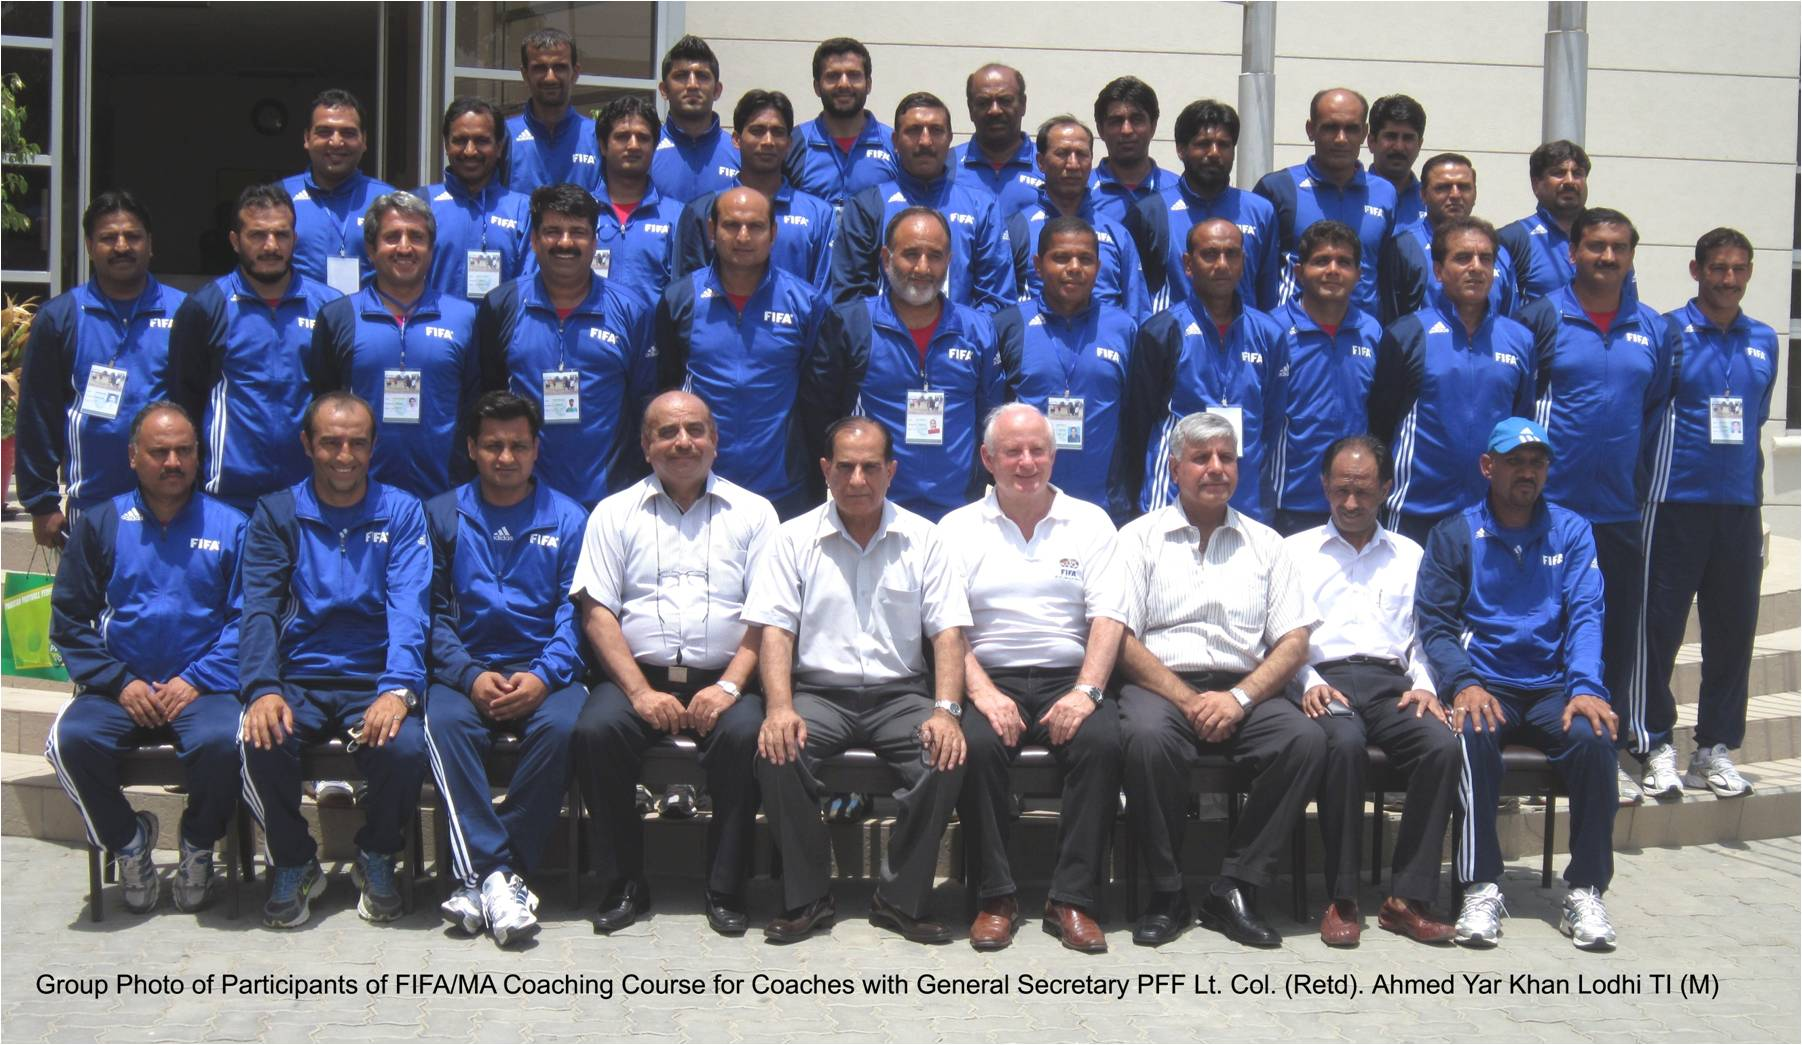 FIFA MA Coaching Course has concluded